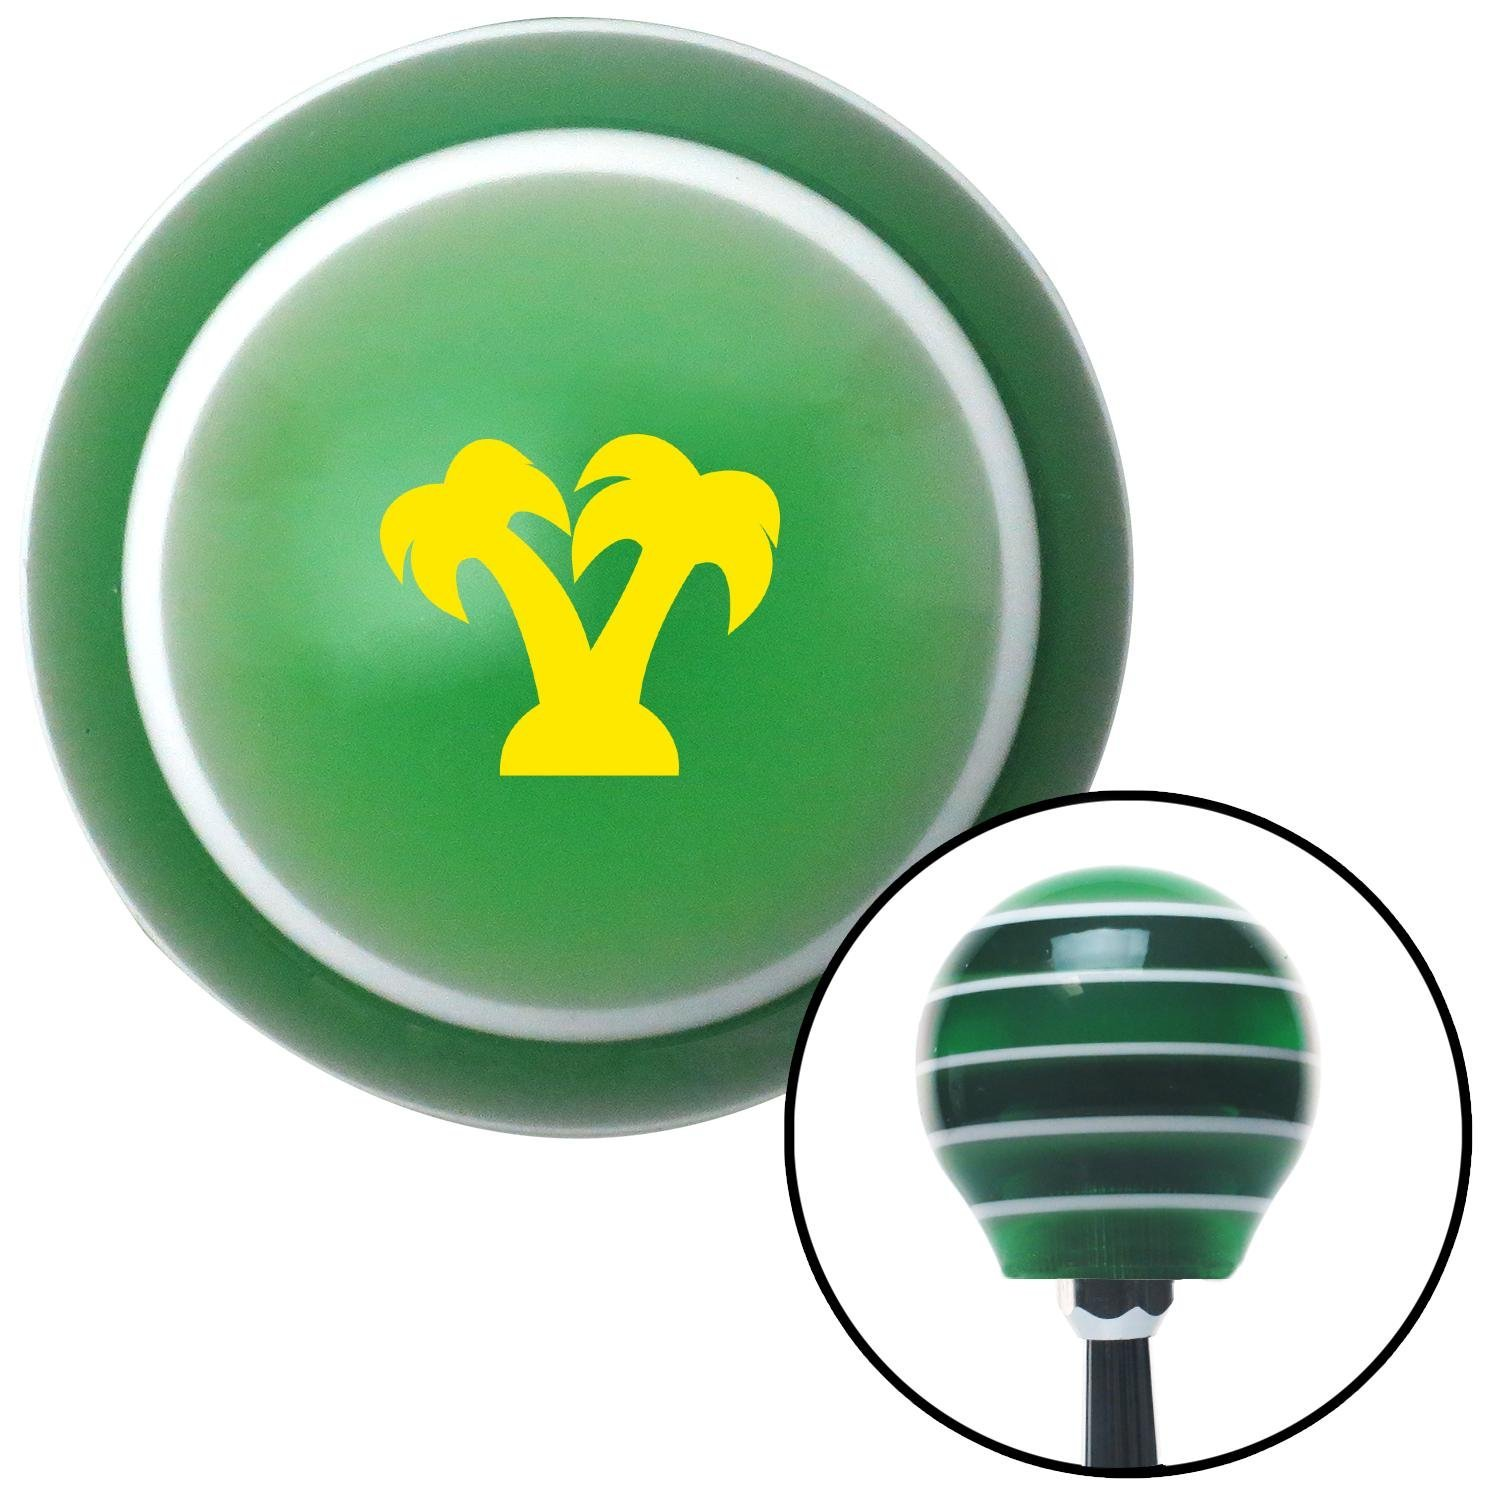 American Shifter 275137 Shift Knob Yellow Palm Trees Green Stripe with M16 x 1.5 Insert